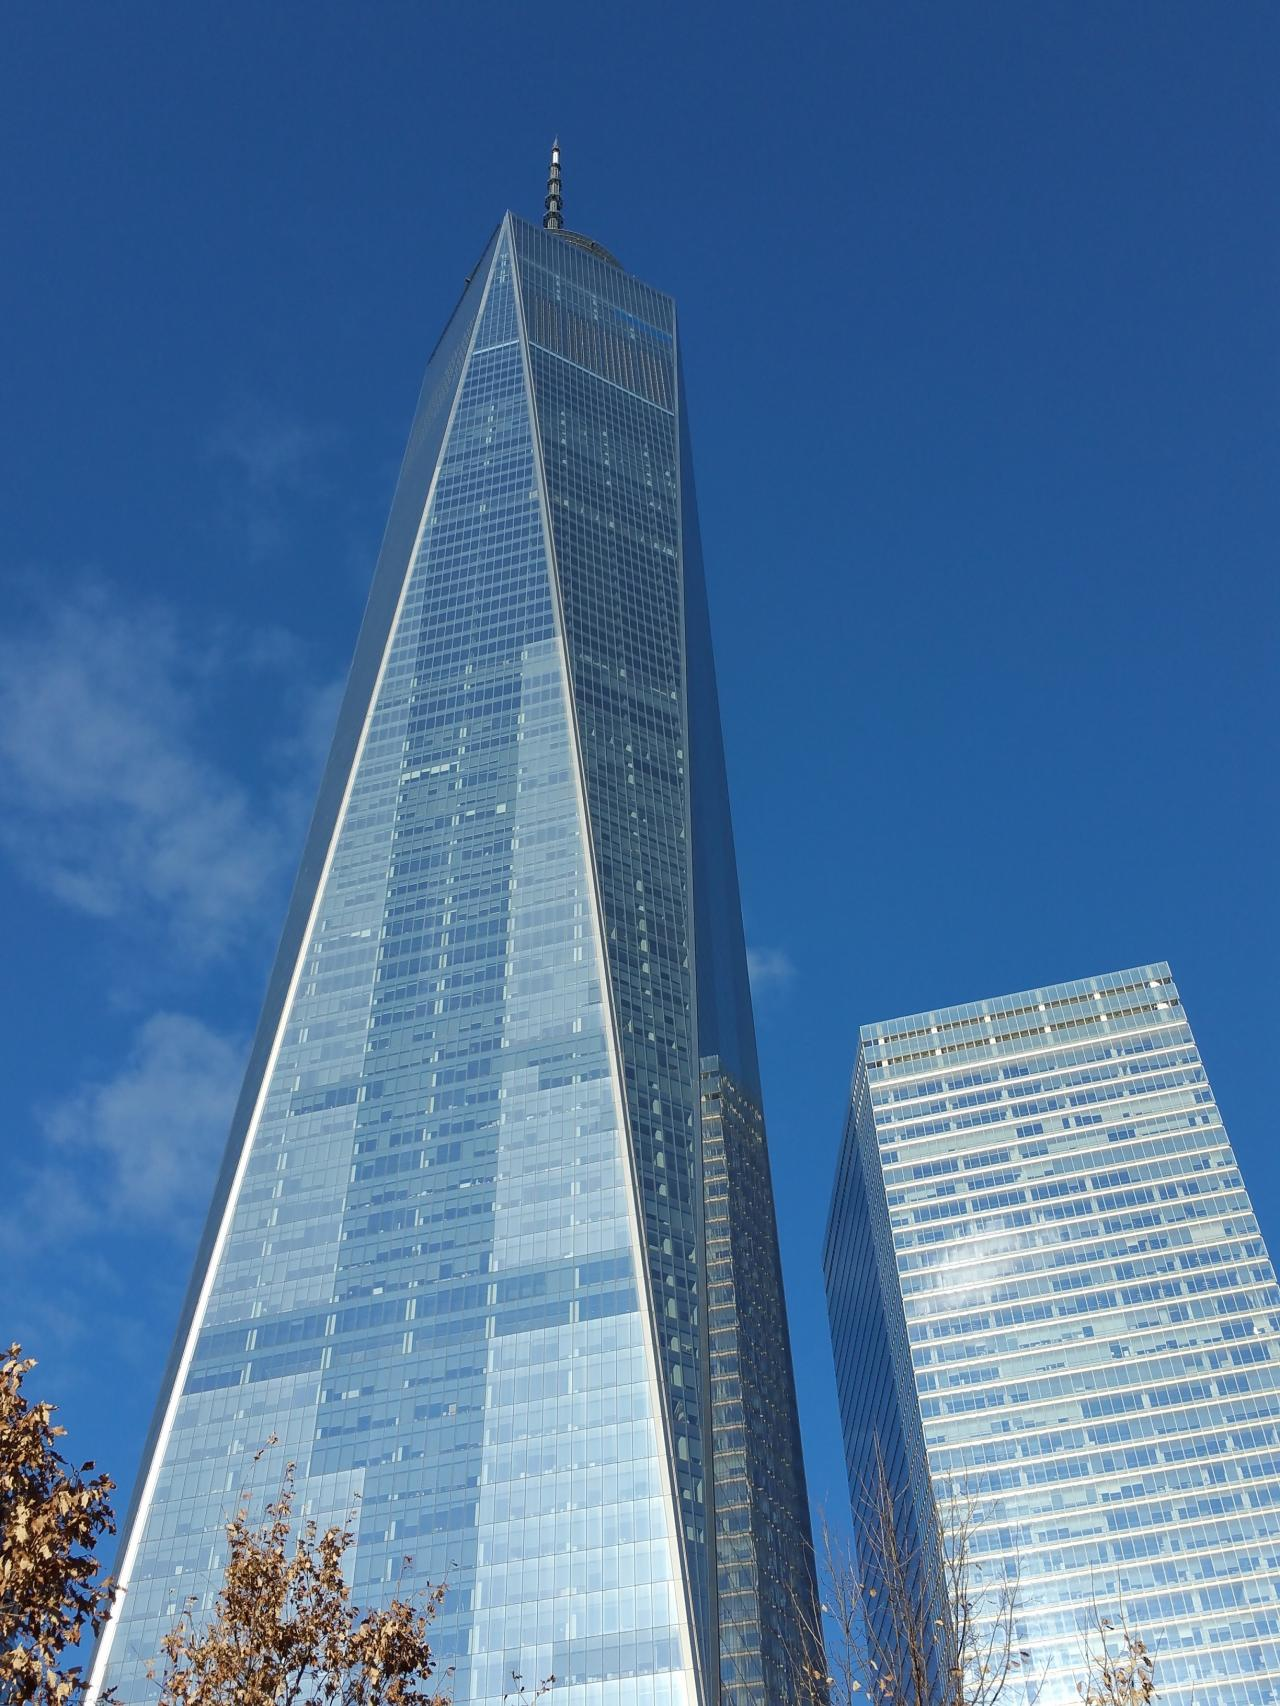 Free photo: Low Angle View of Skyscrapers Against Sky - sky ...